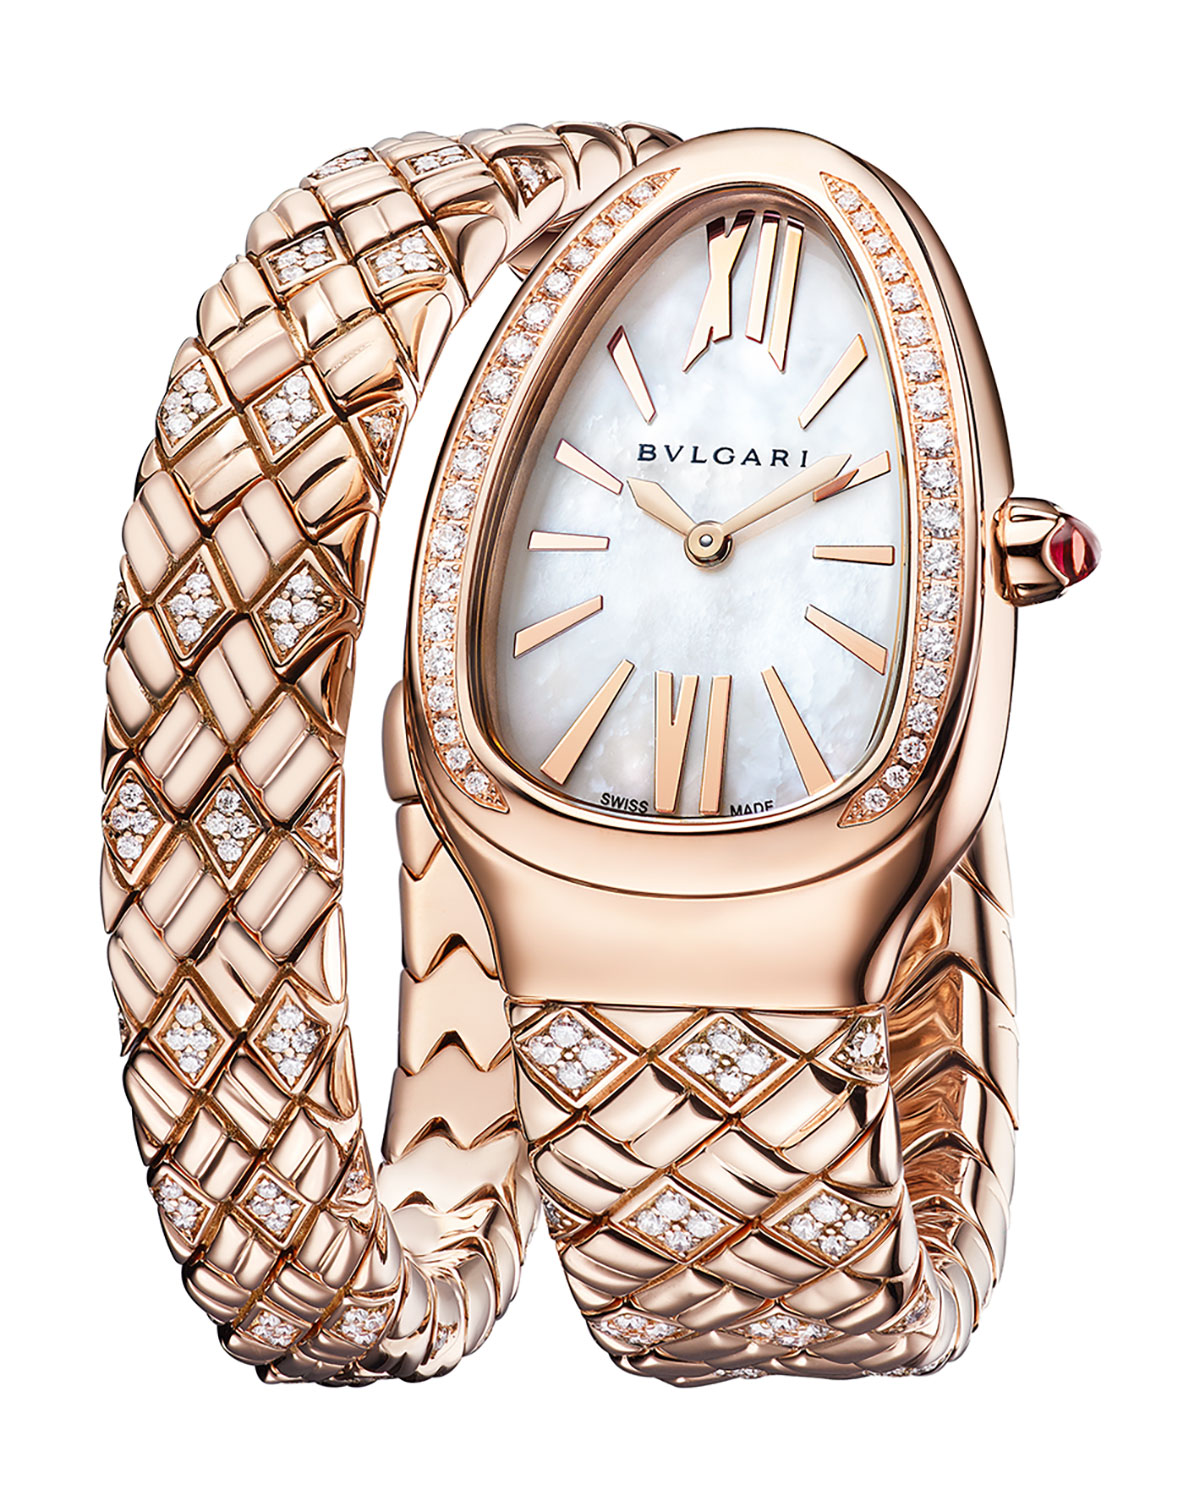 Serpenti Spiga 18k Rose Gold Diamond 1-Twirl Watch with Mother-of-Pearl Dial